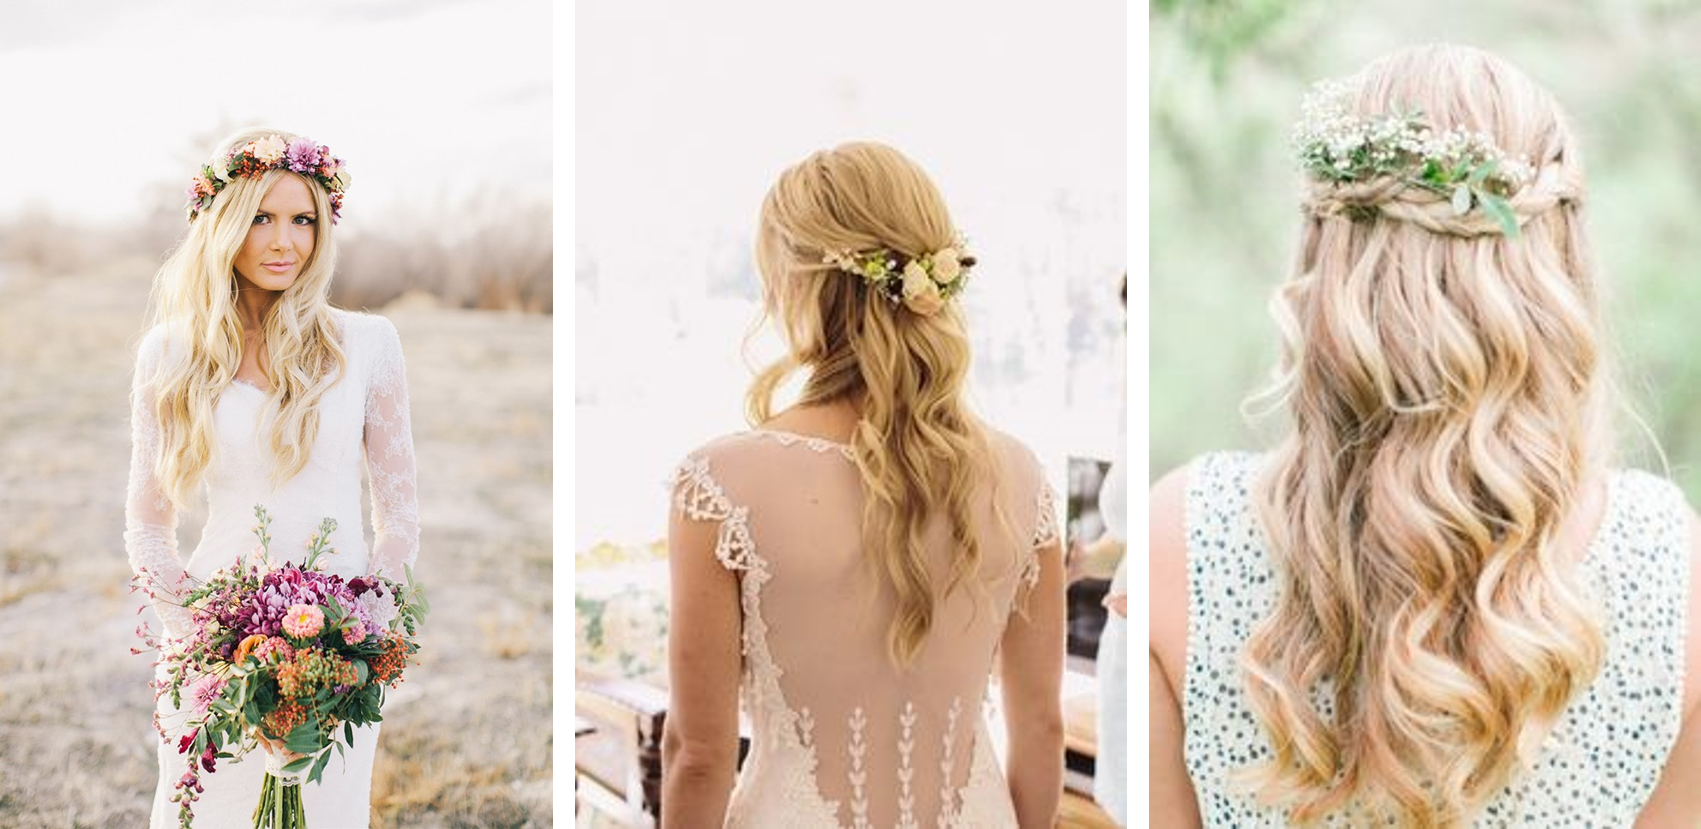 Wedding hair trends tips nyglamclub new york nearsay loose beach waves are great for the bride who is looking for a romantic wedding hairstyle pair this look with some flower crowns or fresh flowers izmirmasajfo